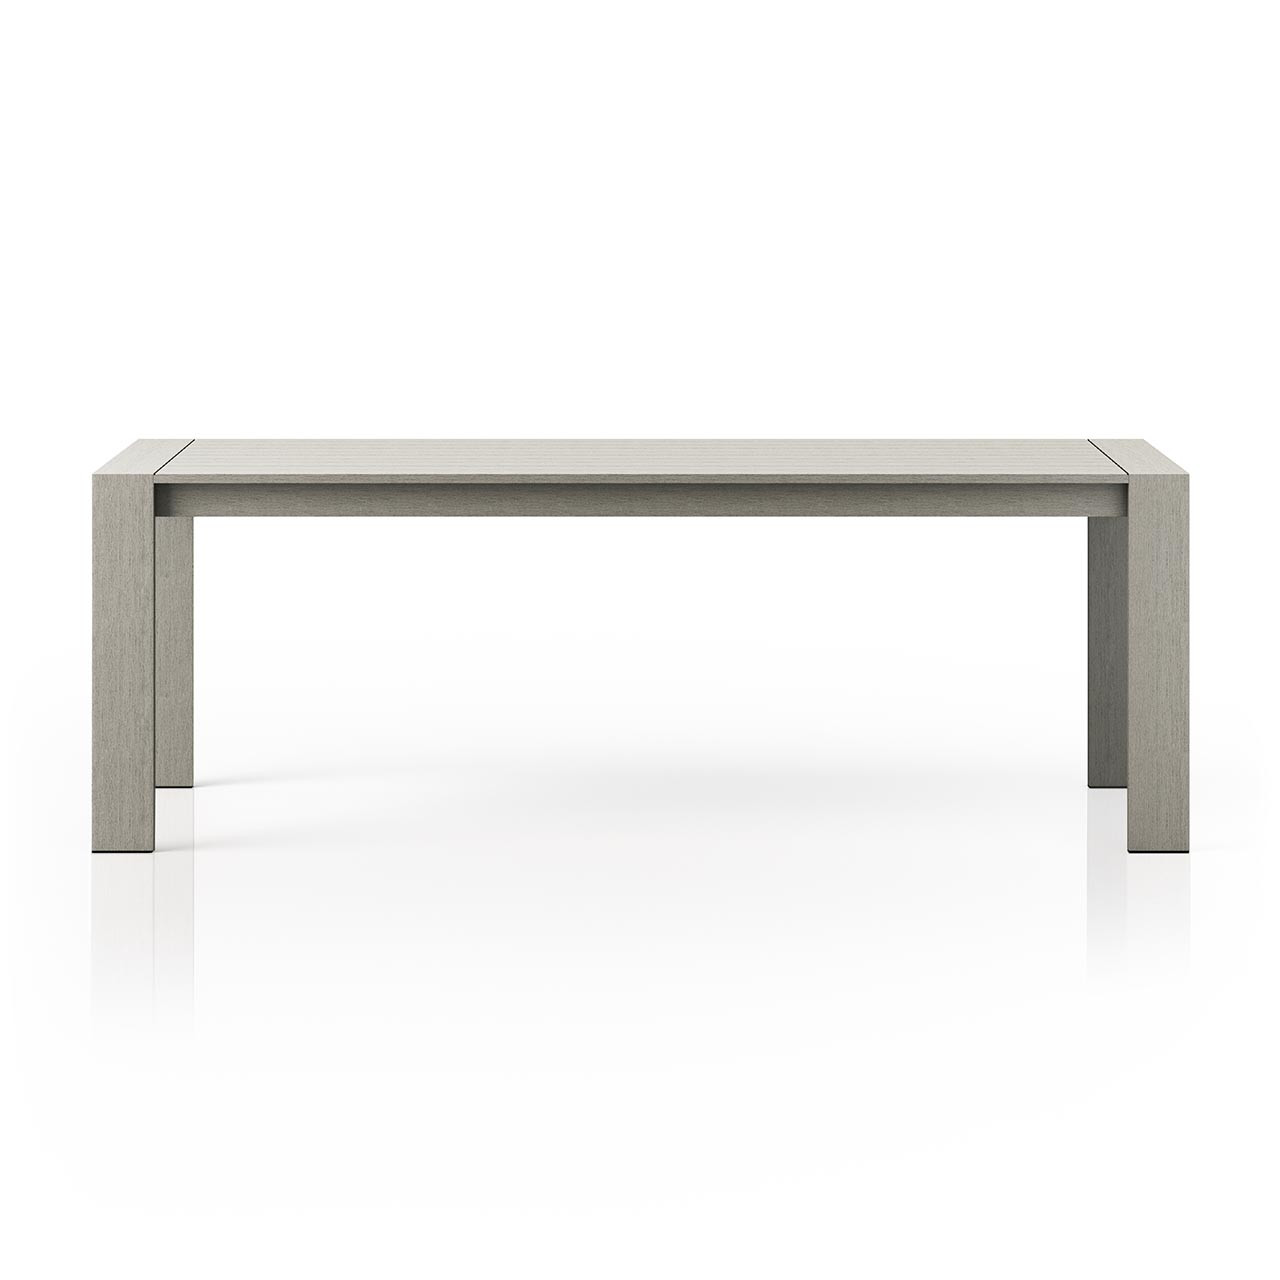 Montel Outdoor Dining Table